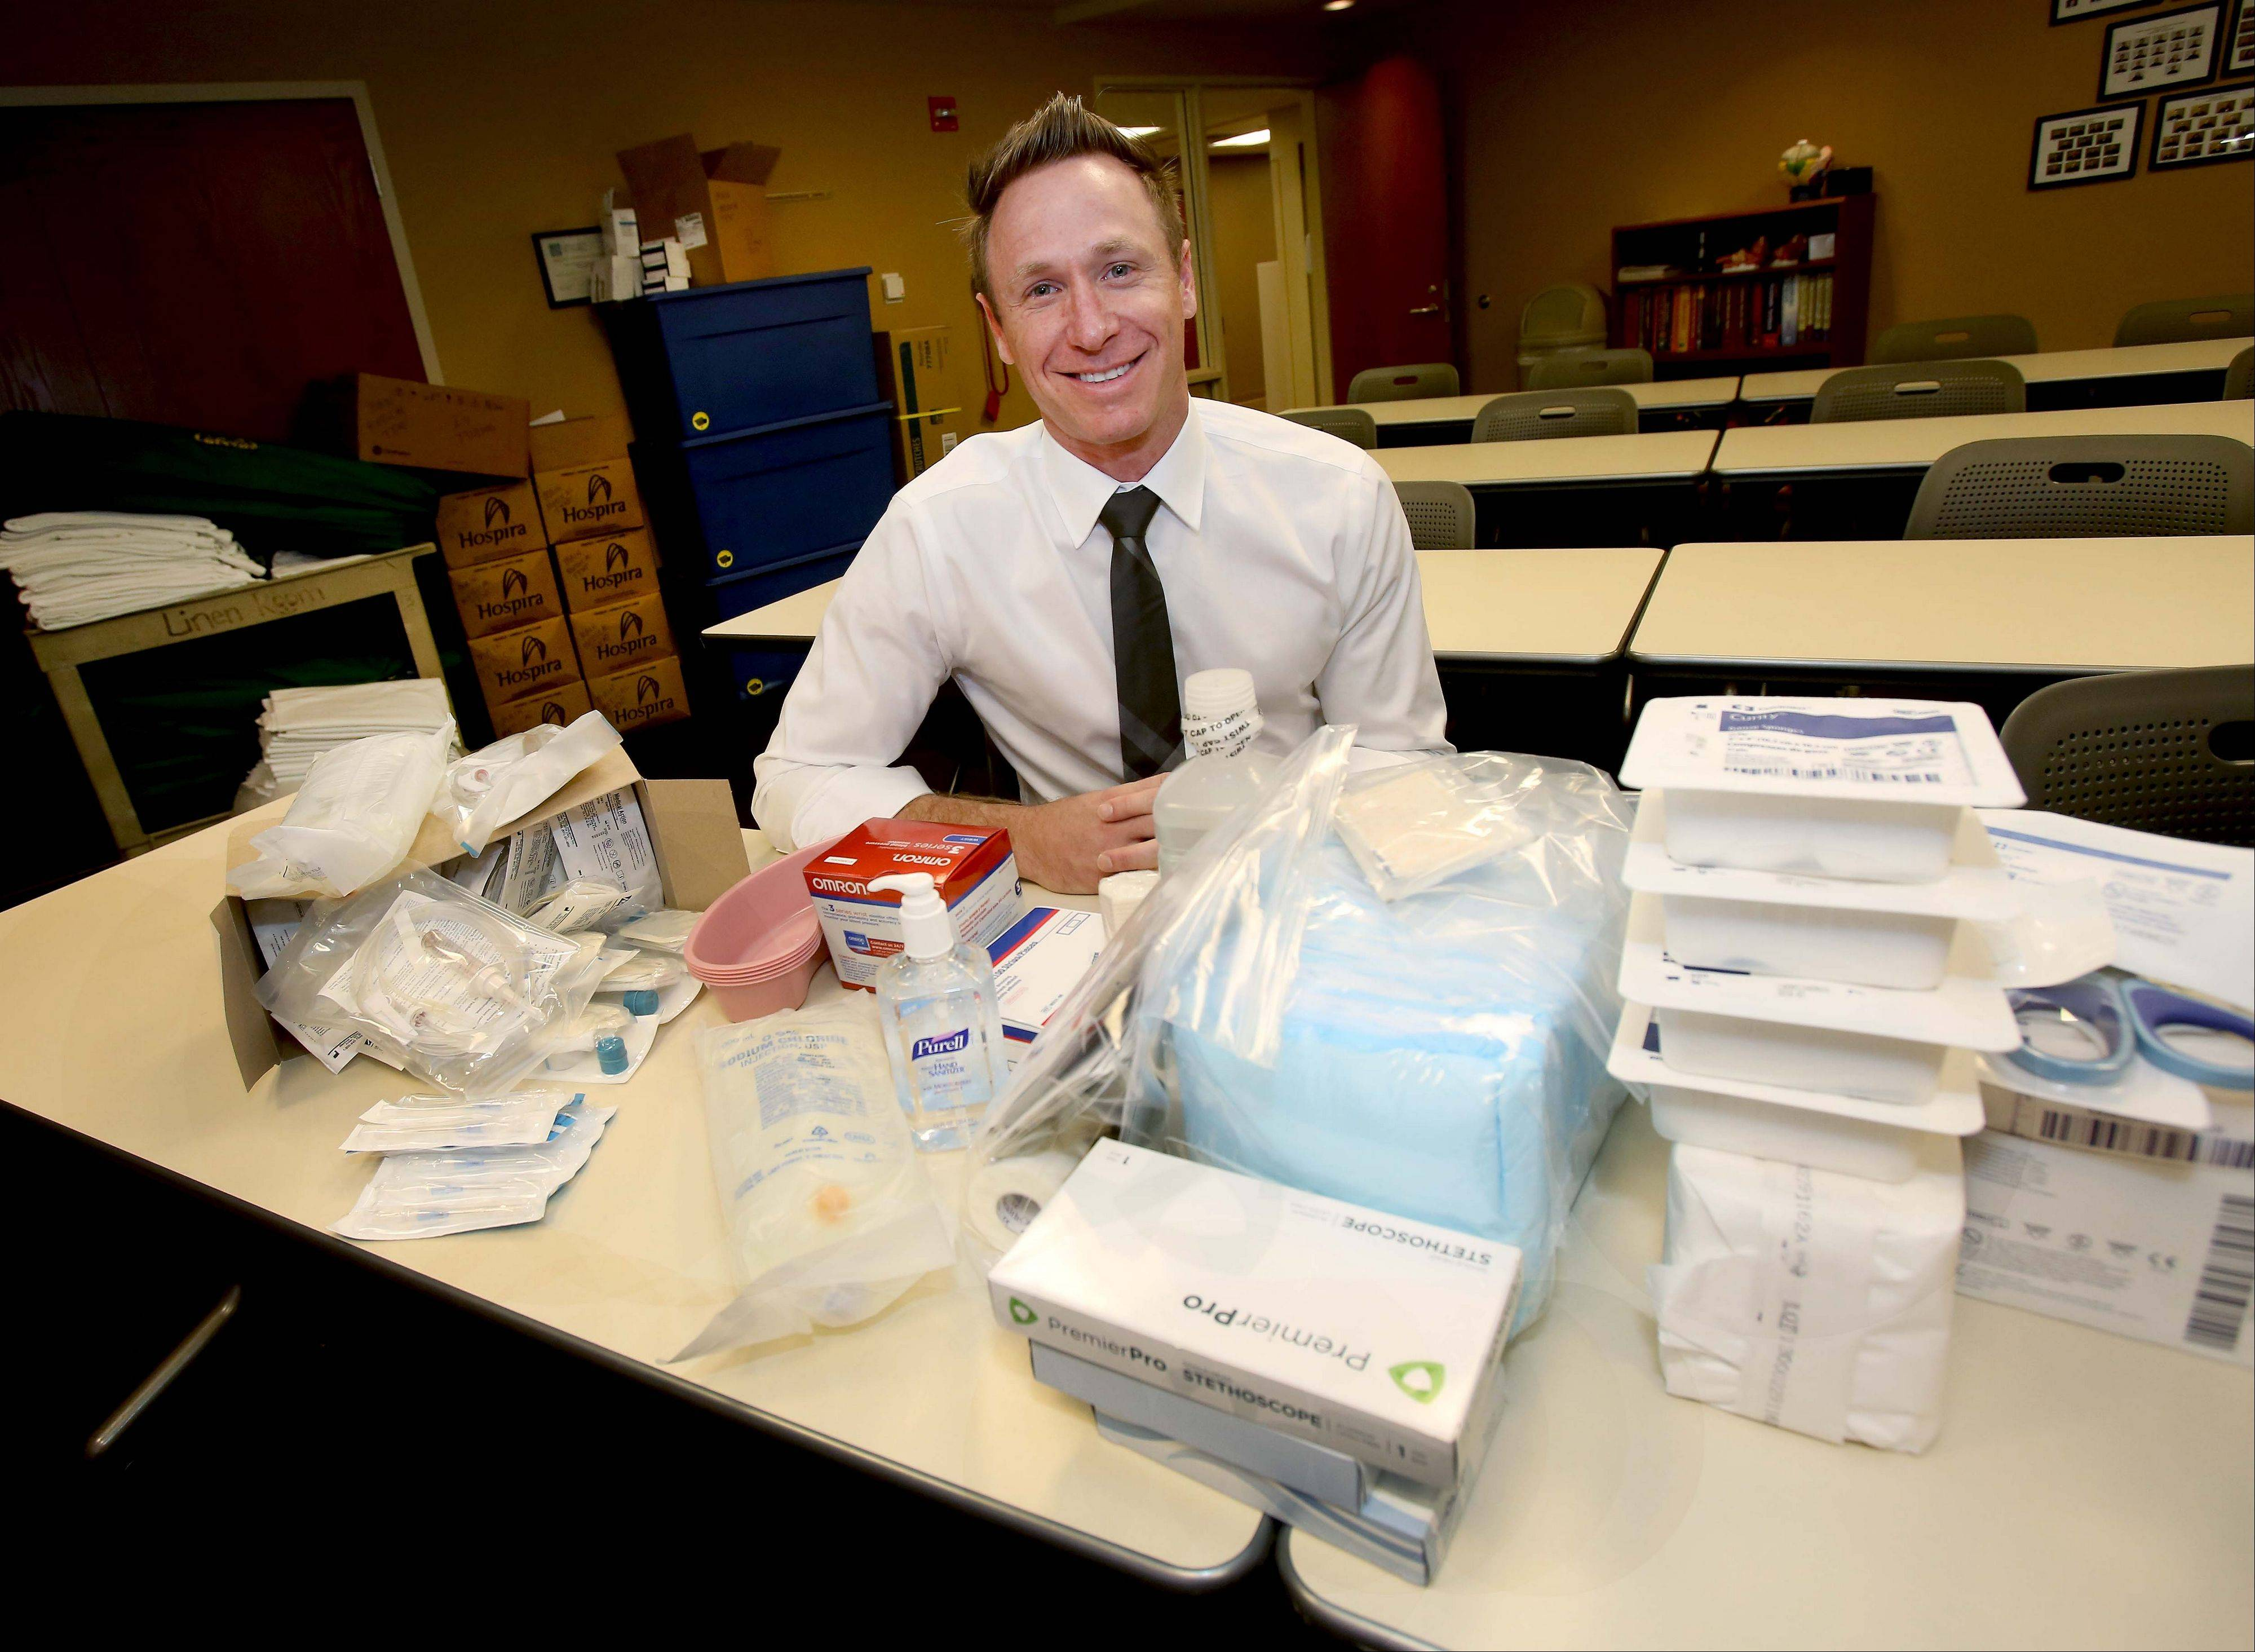 Edward Hospital emergency room physician Dr. Michael Hartmann will have these supplies and more on hand Sunday while serving as medical director for the inaugural Edward Hospital Naperville Marathon and Half Marathon.